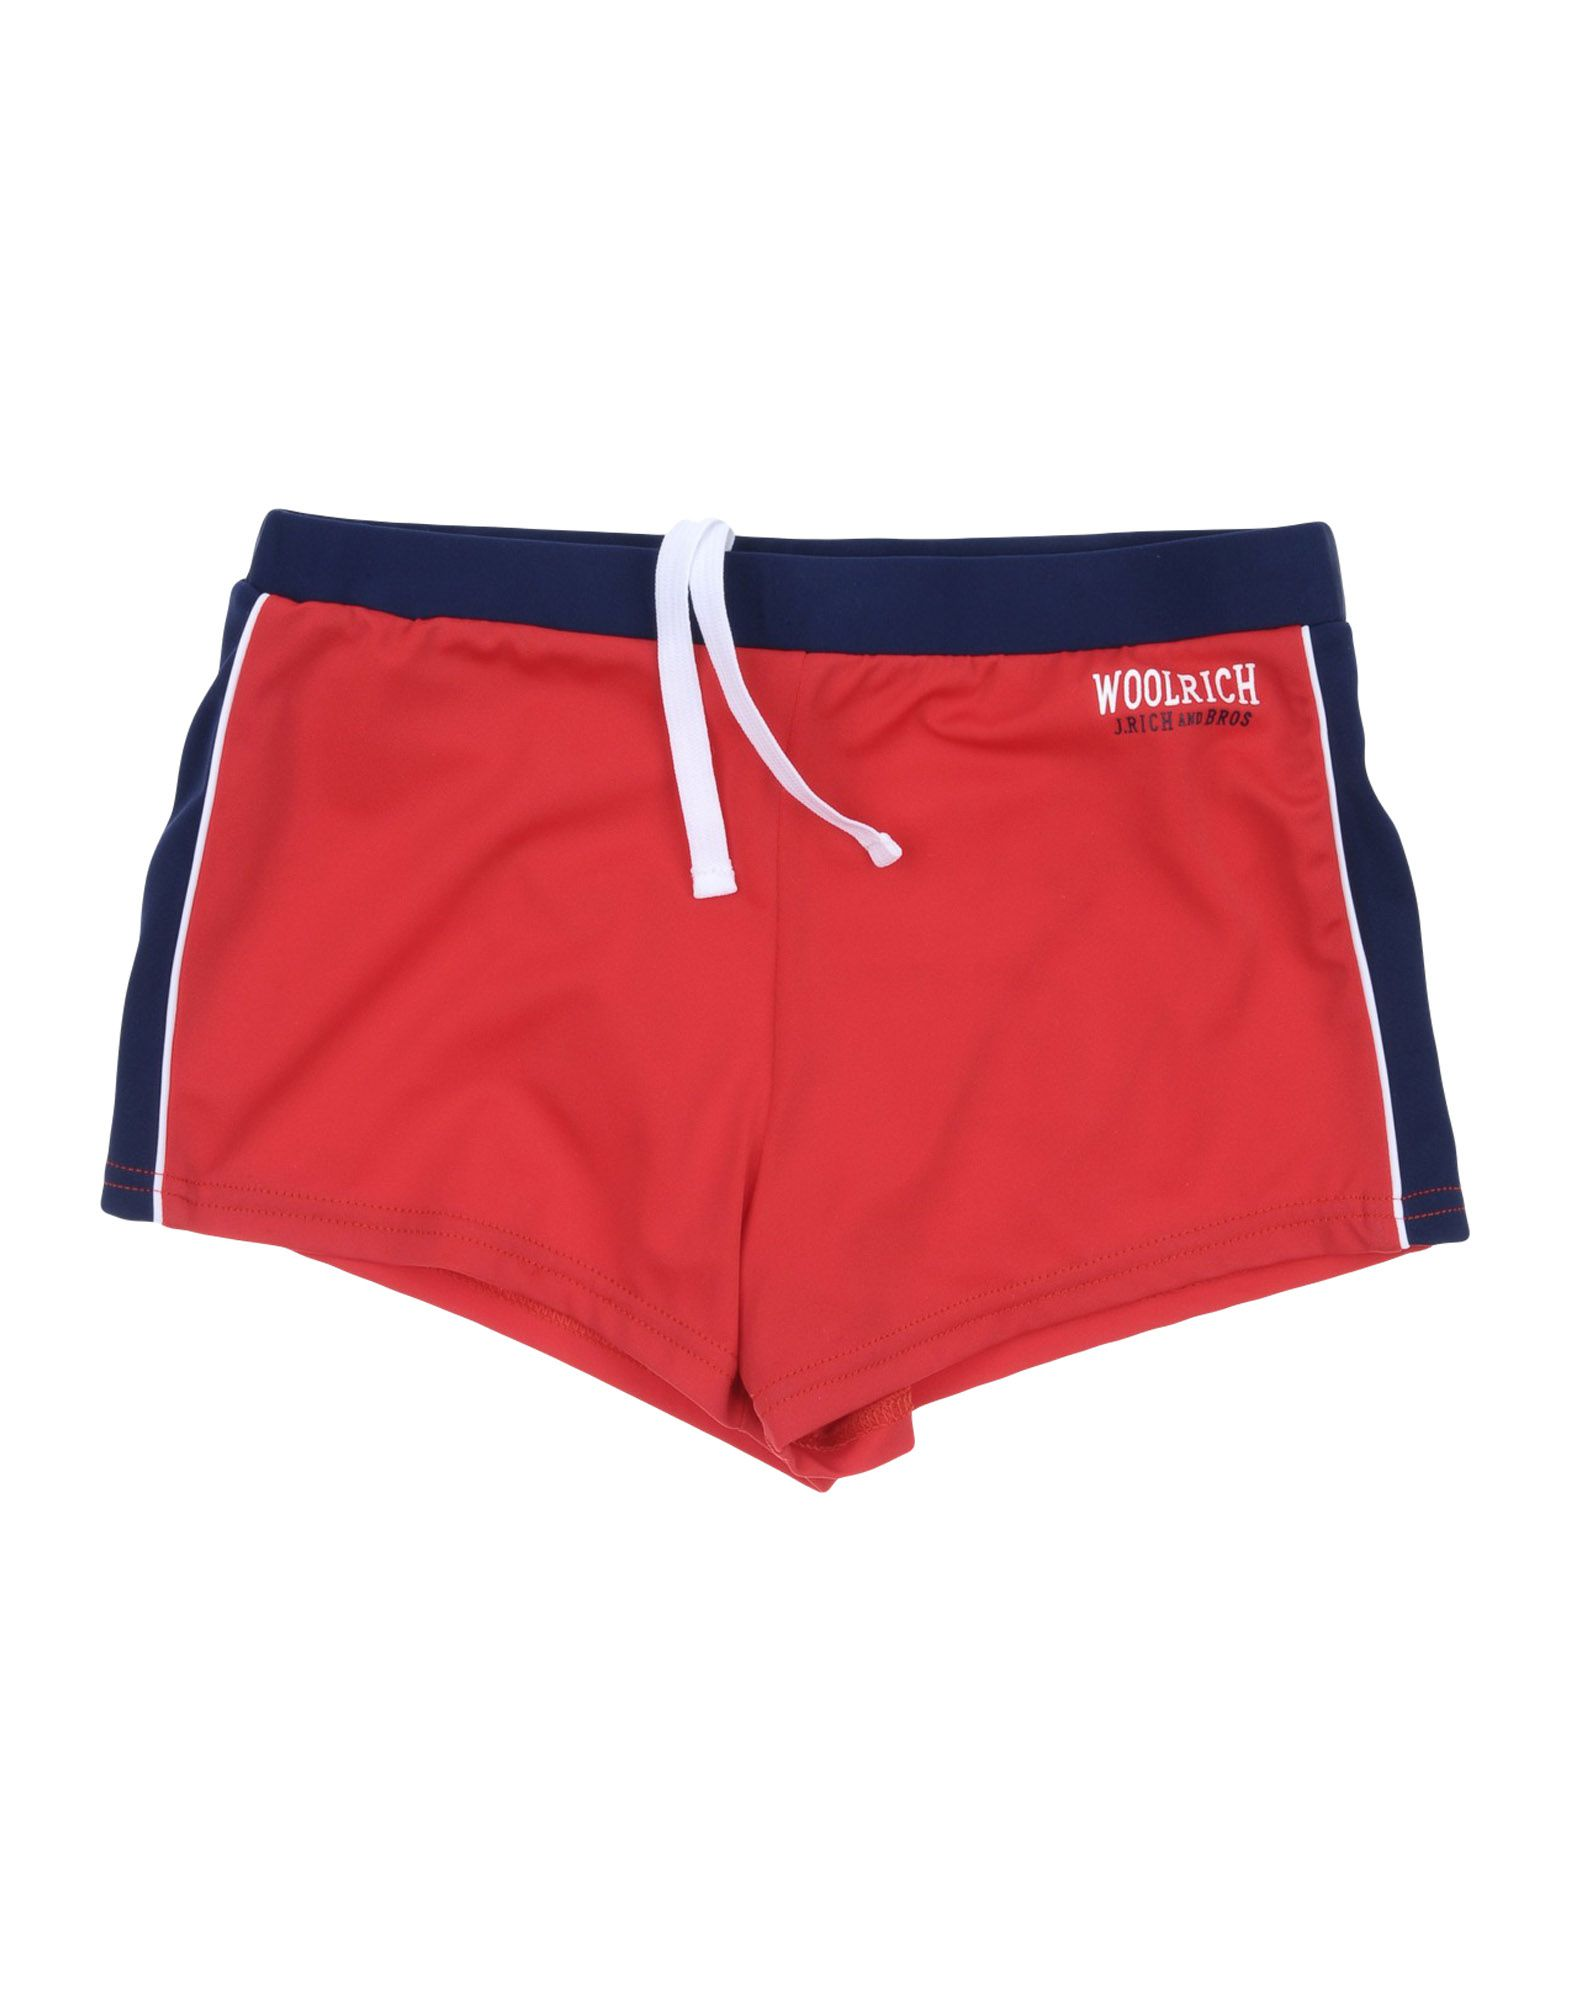 WOOLRICH Swim trunks